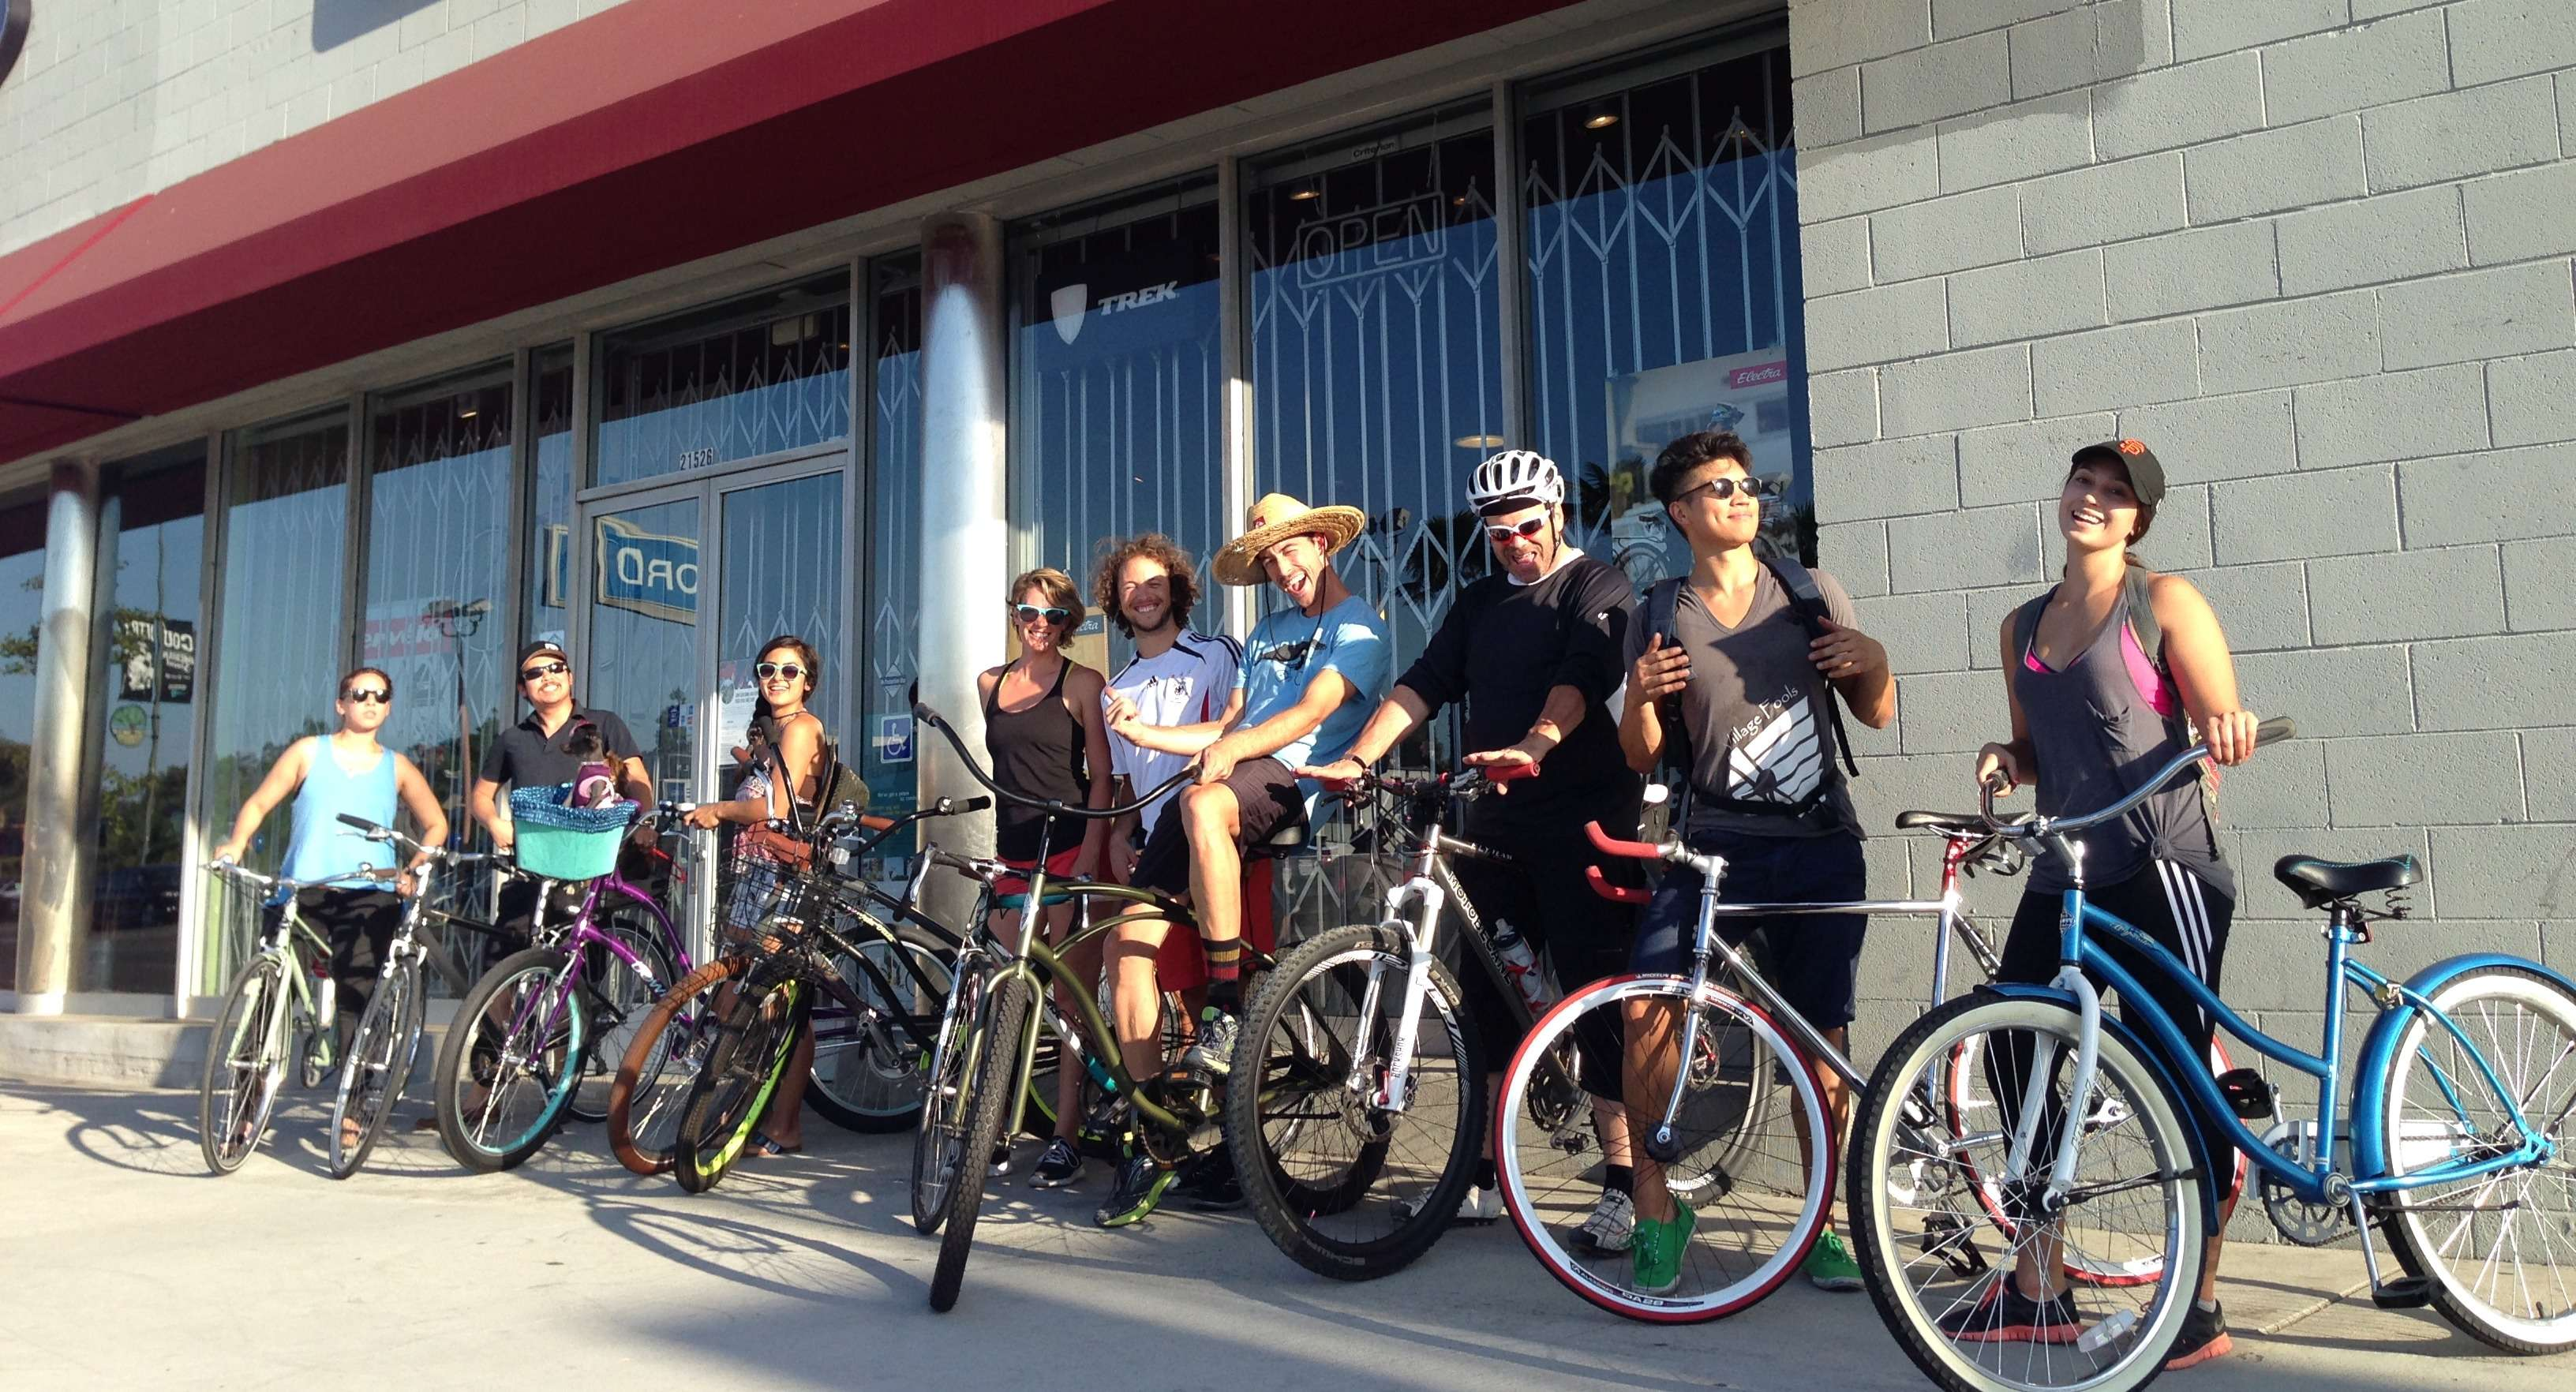 Group ride in front of store